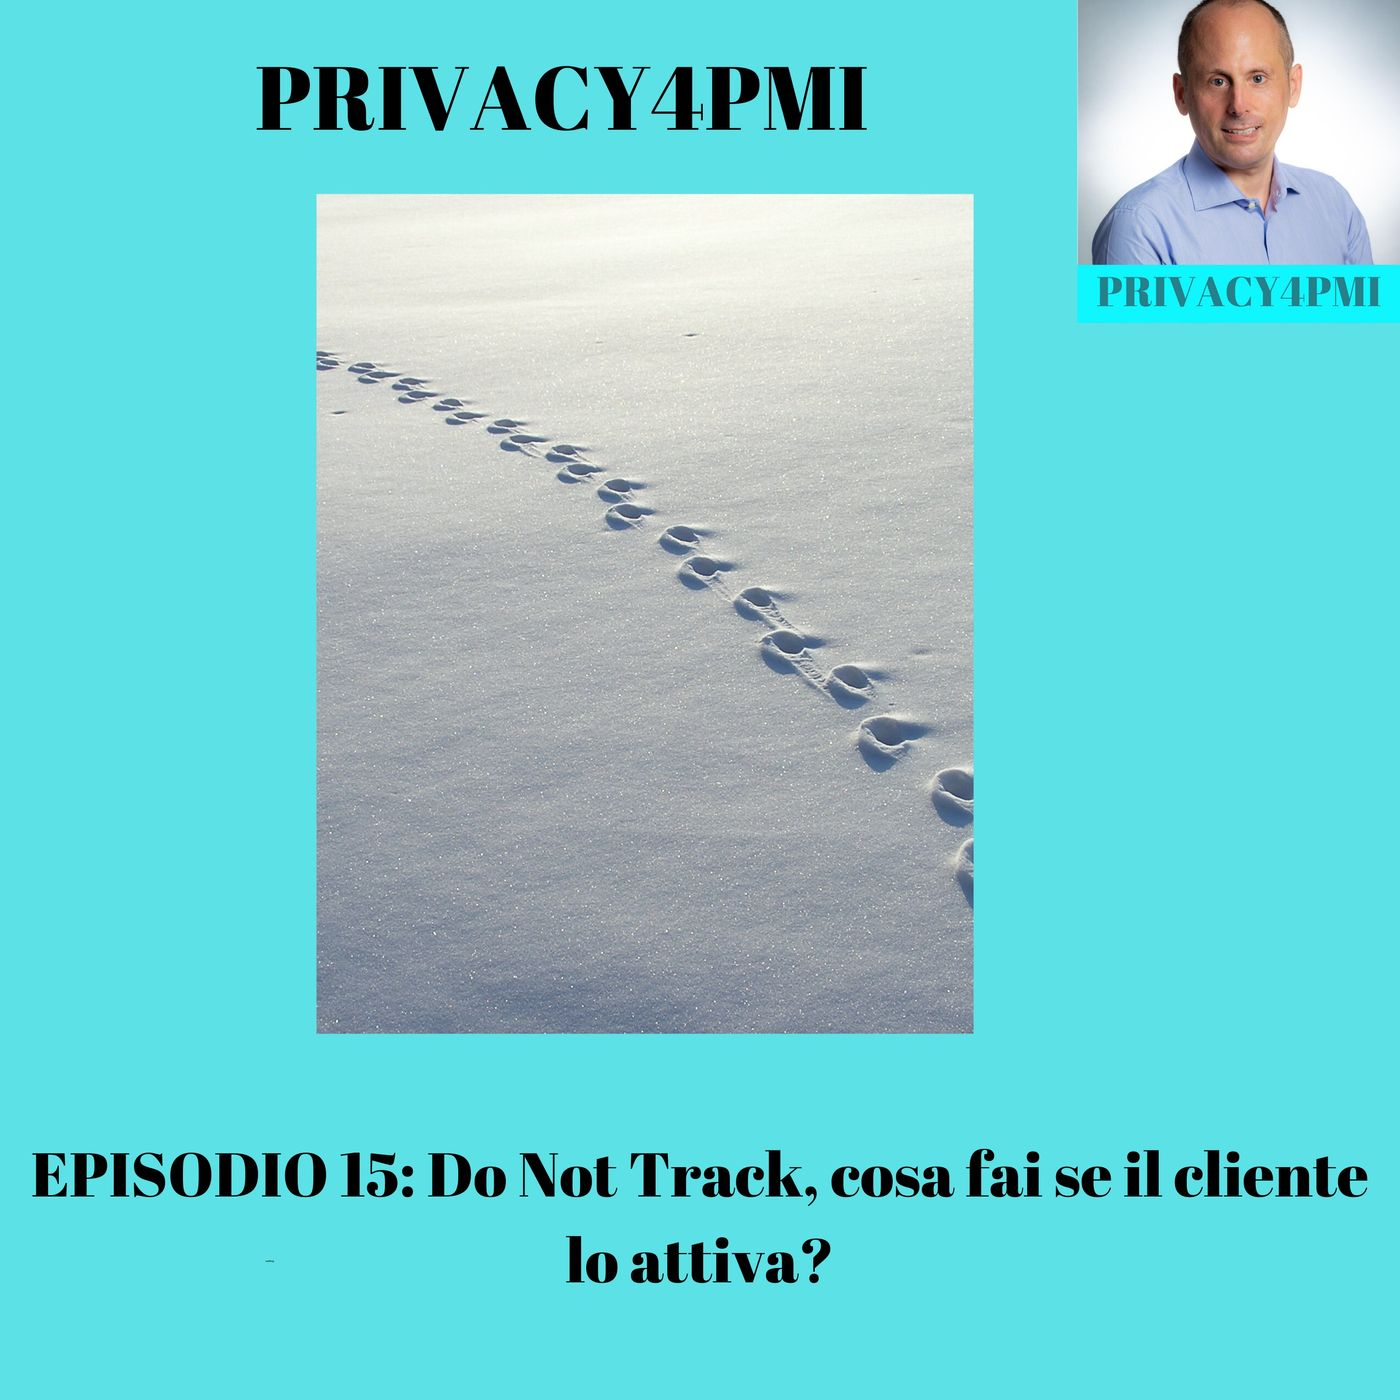 Episodio 15-Do Not Track DNT: cosa fai se l'utente lo attiva?